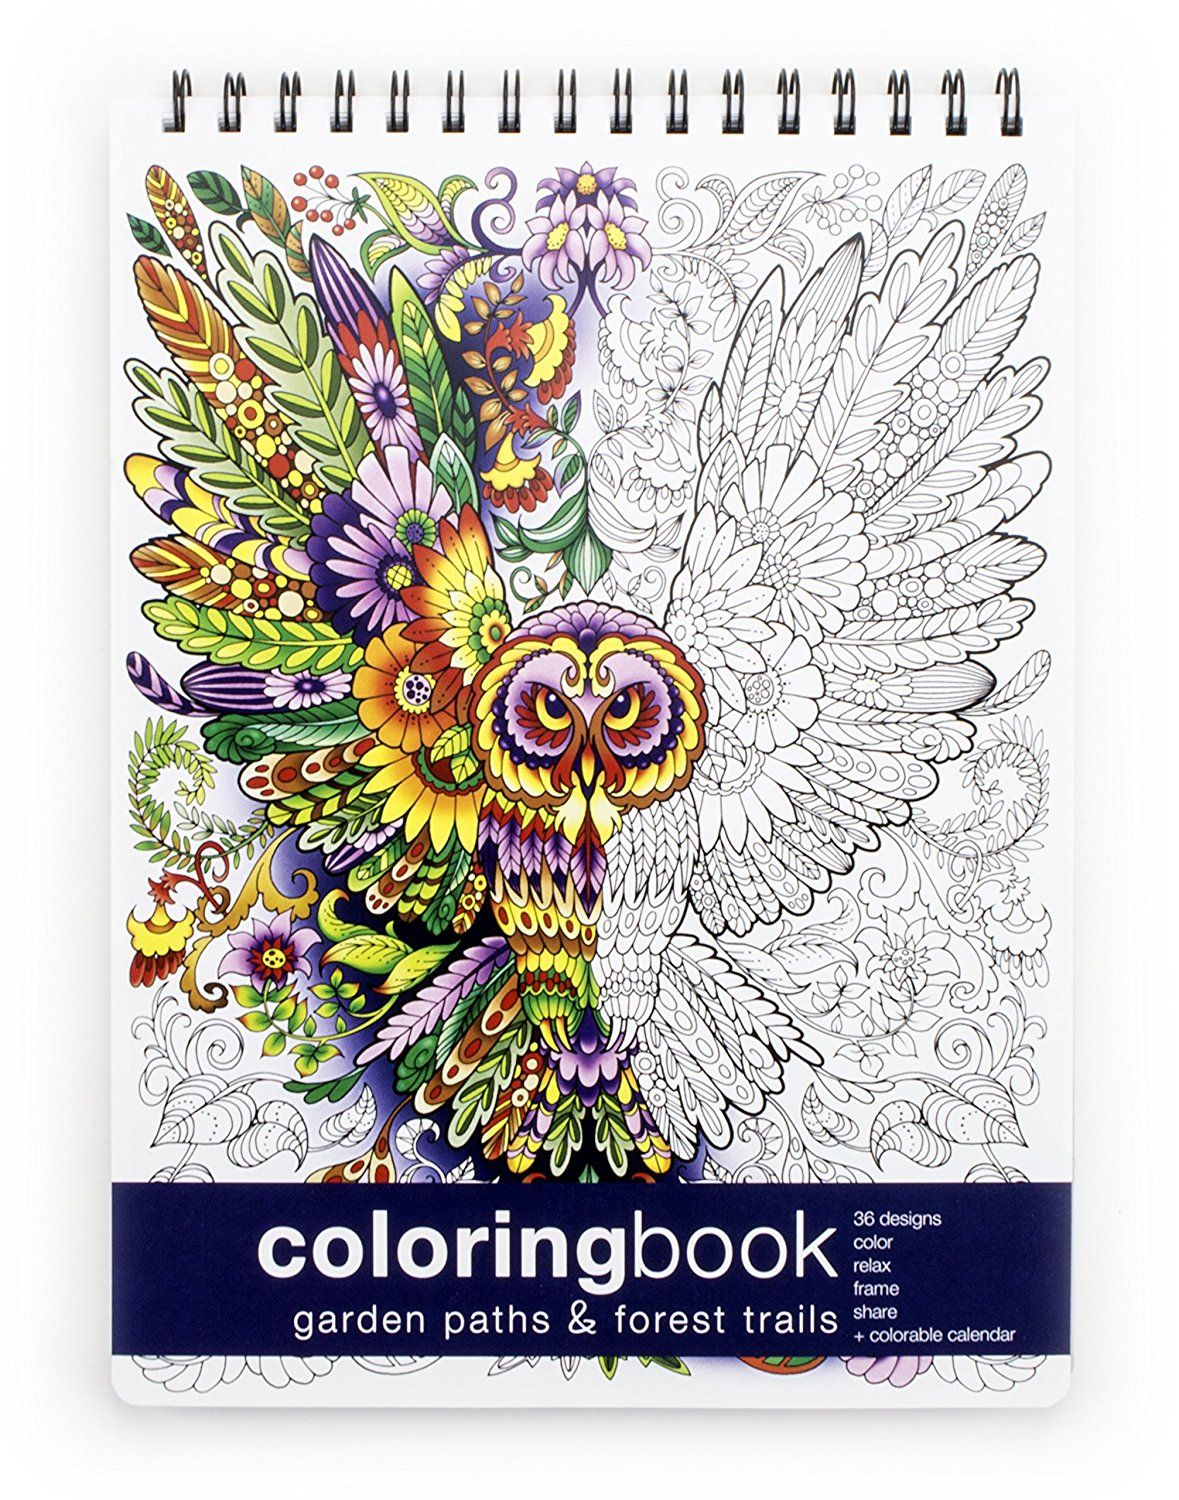 Colouring Books A coloring book is a type of book containing ...